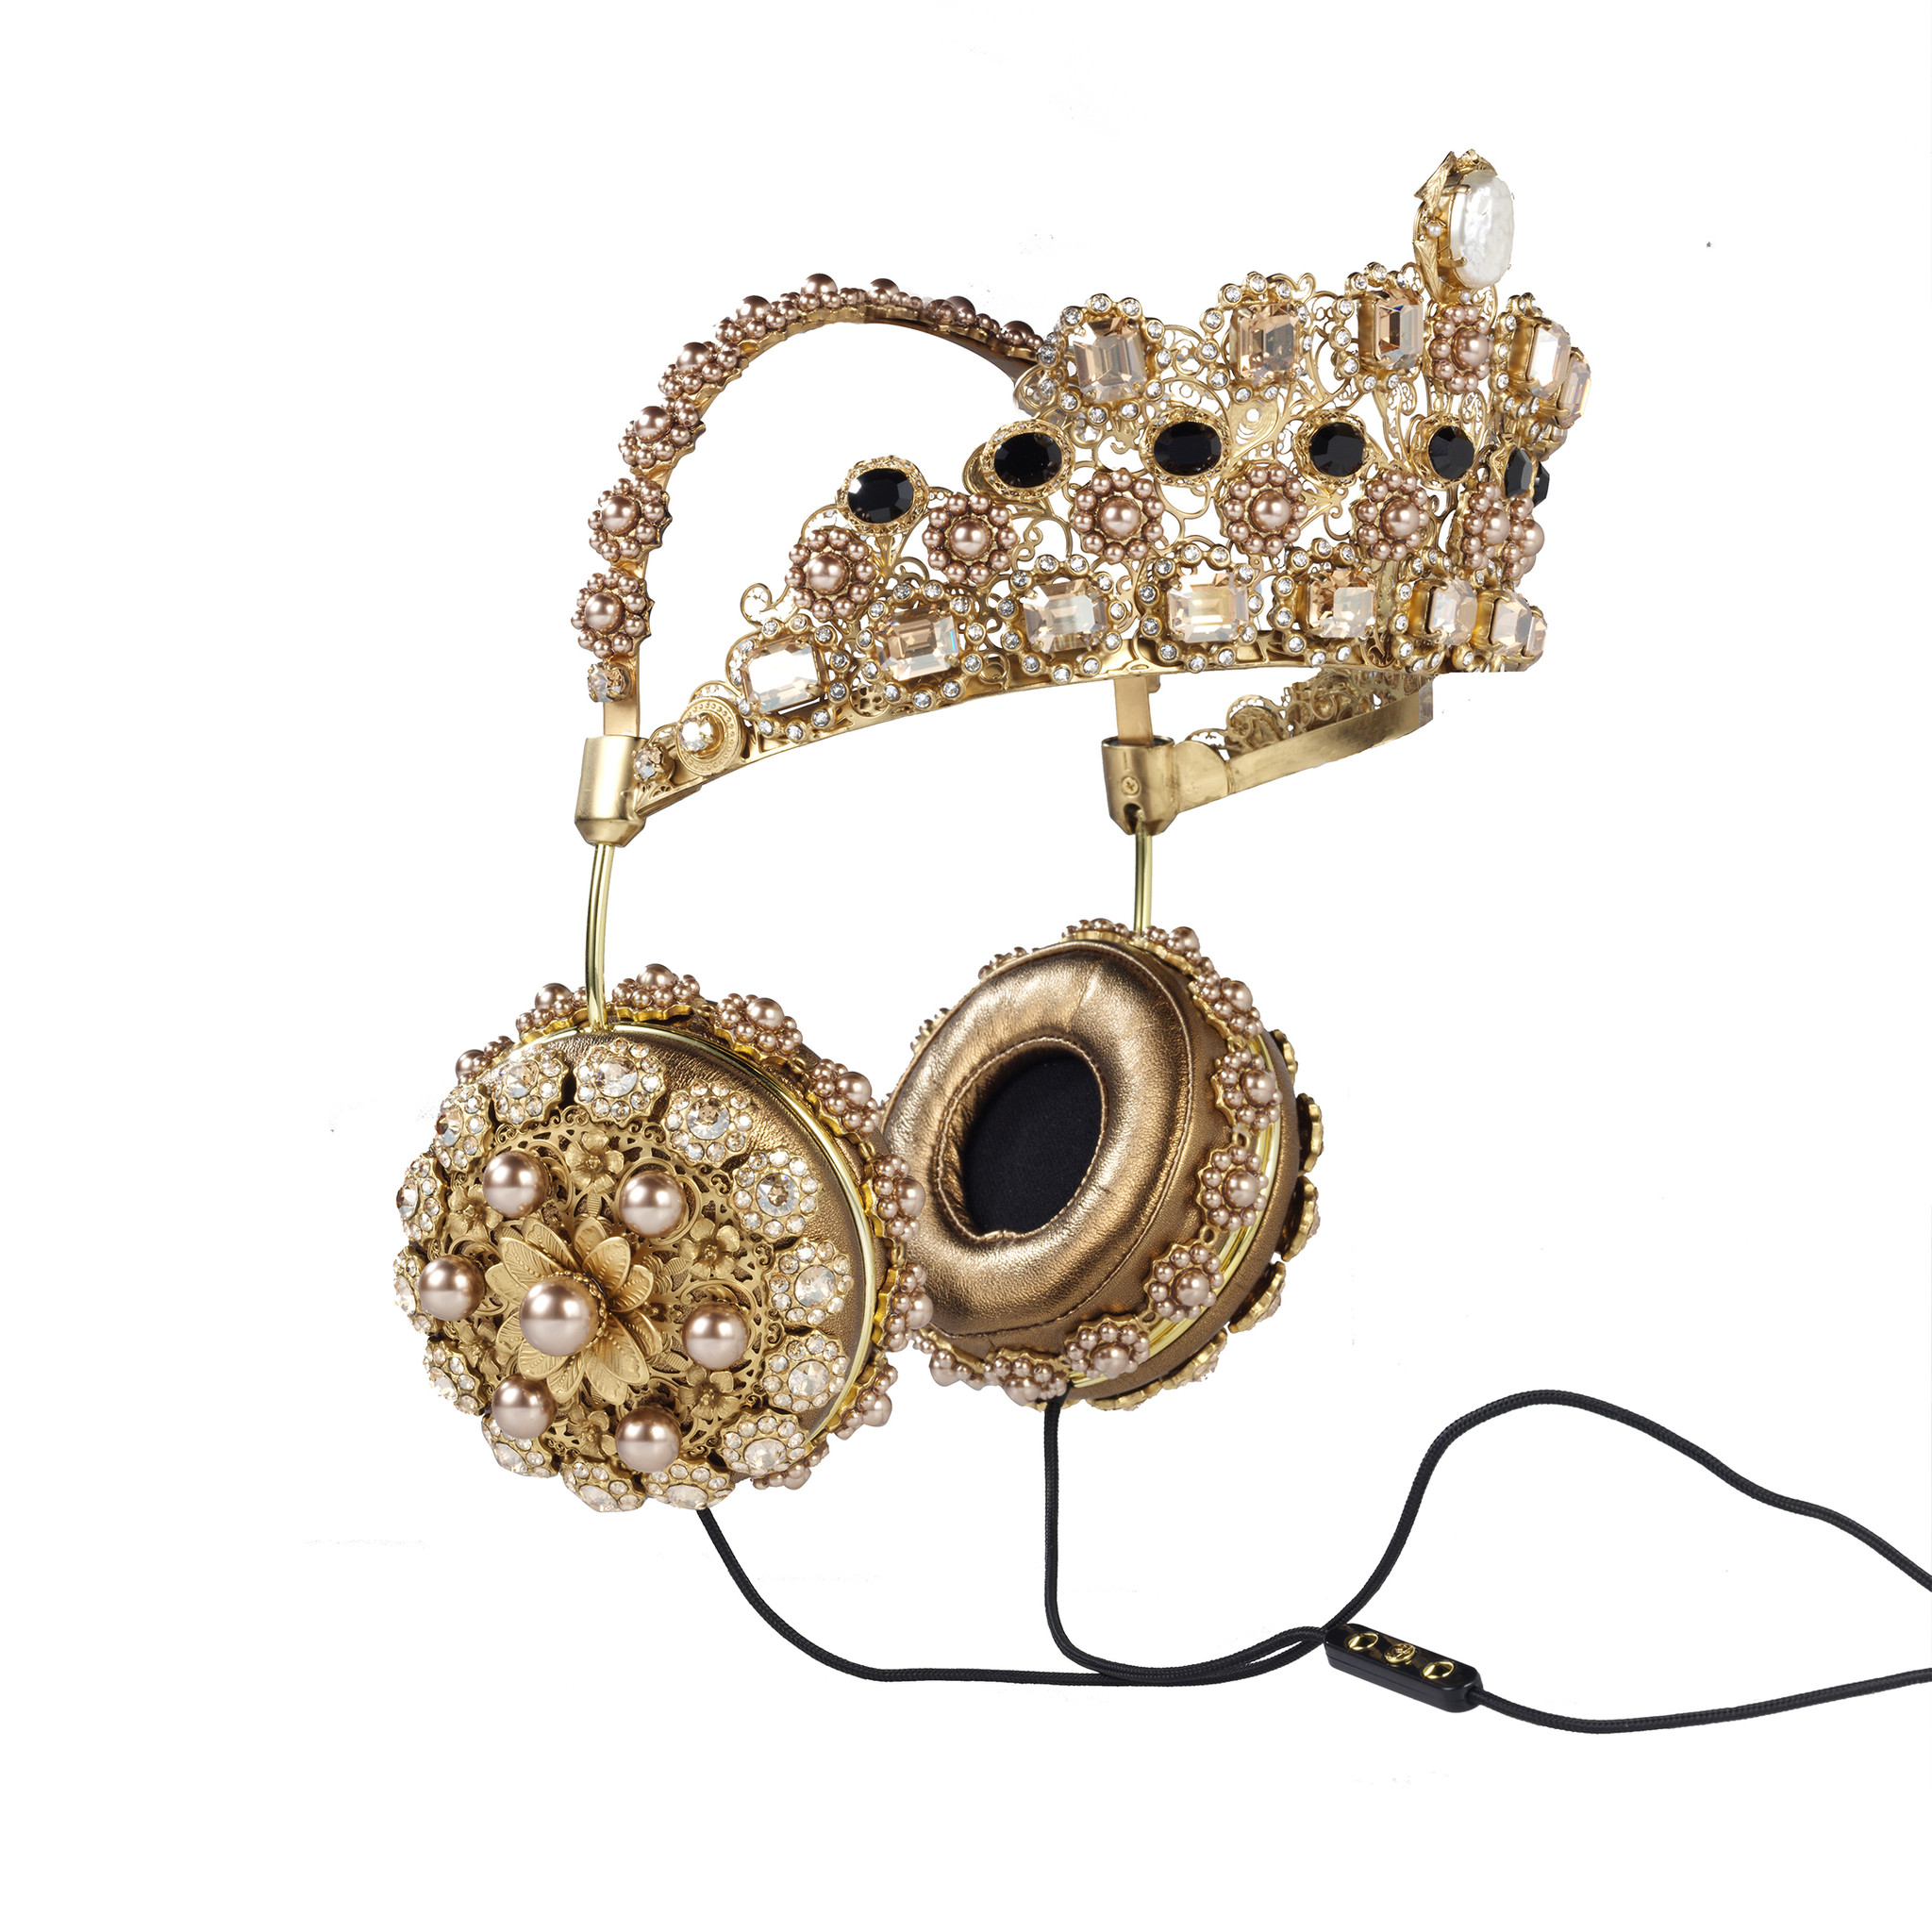 Rihanna-Instagam-FRENDS-Dolce-Gabbana-Embellished-Leather Headphones-with Gold-Crown-